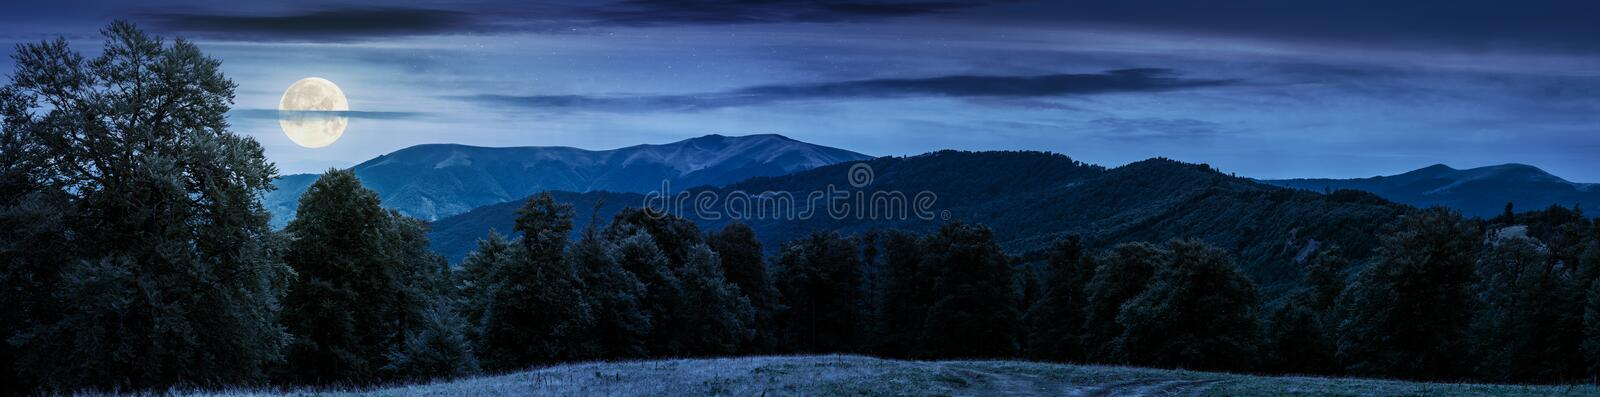 Gorgeous mountain panorama in summer at night royalty free stock photography